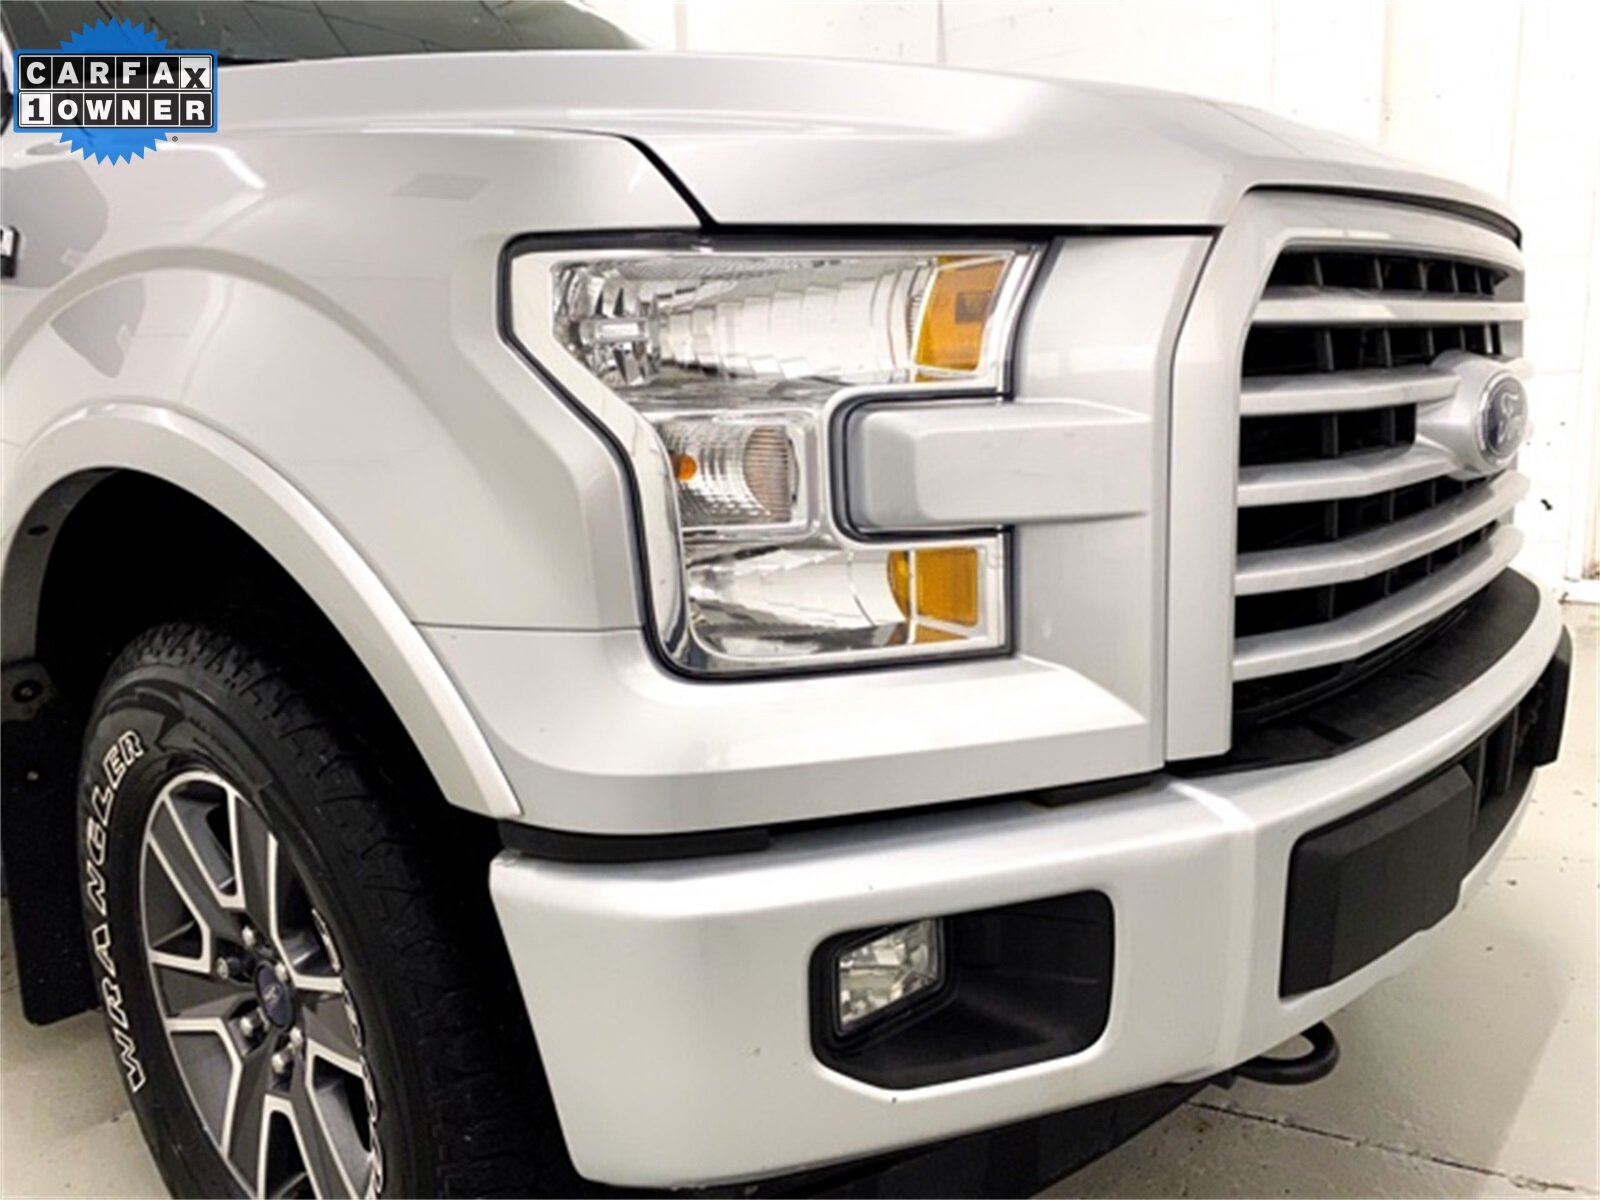 2017 Ingot Silver Metallic Ford F-150 XLT Automatic Truck 4 Door EcoBoost 3.5L V6 GTDi DOHC 24V Twin Turbocharged Engine